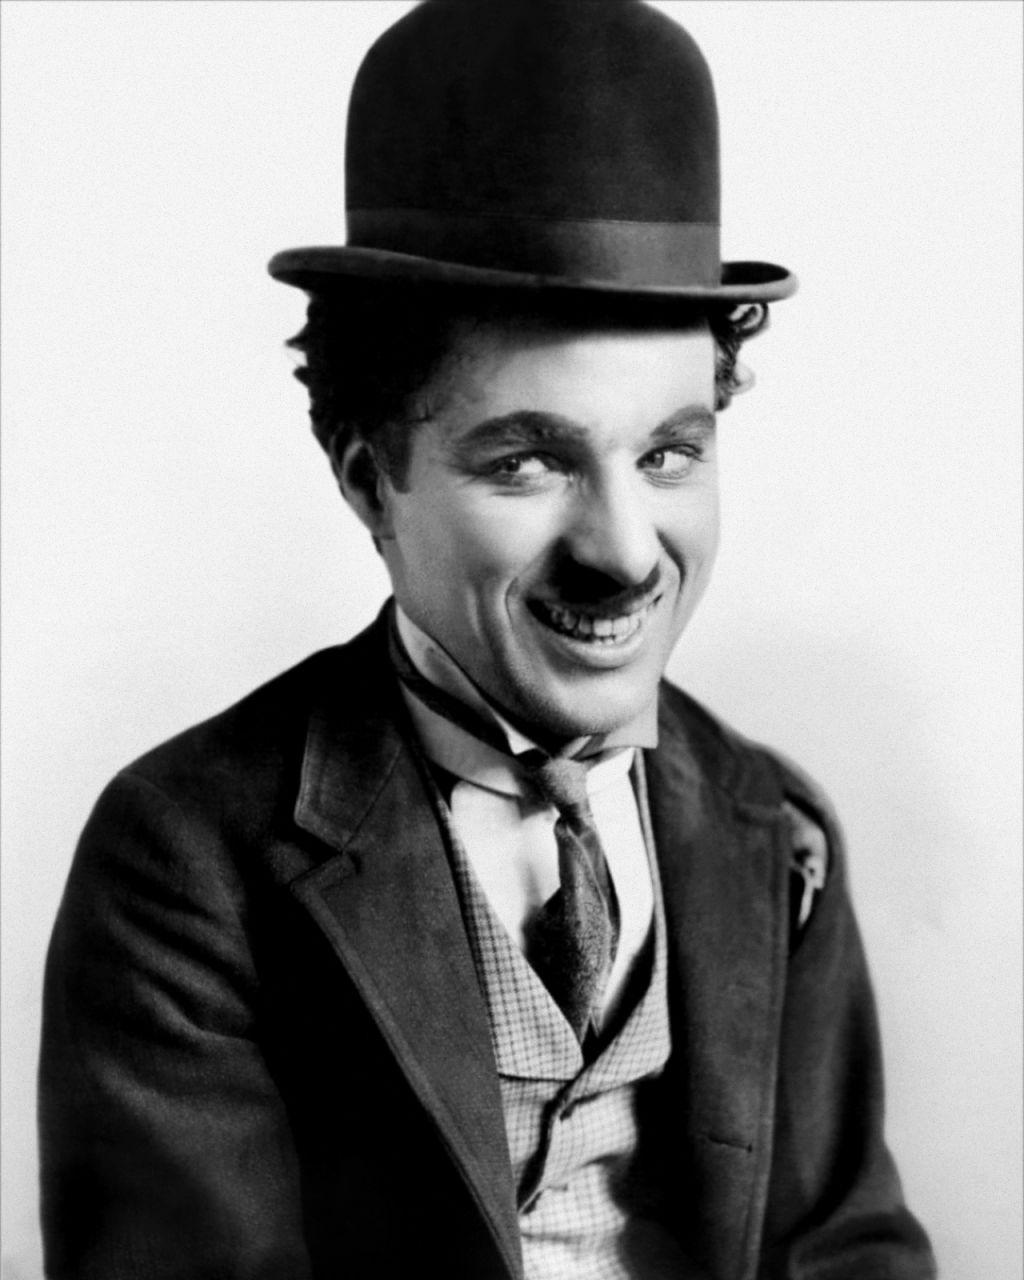 charlie chaplin biography essay Charlie chaplin in his tramp persona charlie chaplin (1889–1977) was an english actor, comedian, and filmmaker whose work in motion pictures spanned from 1914 until 1967 during his early years in film, he became established as a worldwide cinematic idol renowned for his tramp persona.